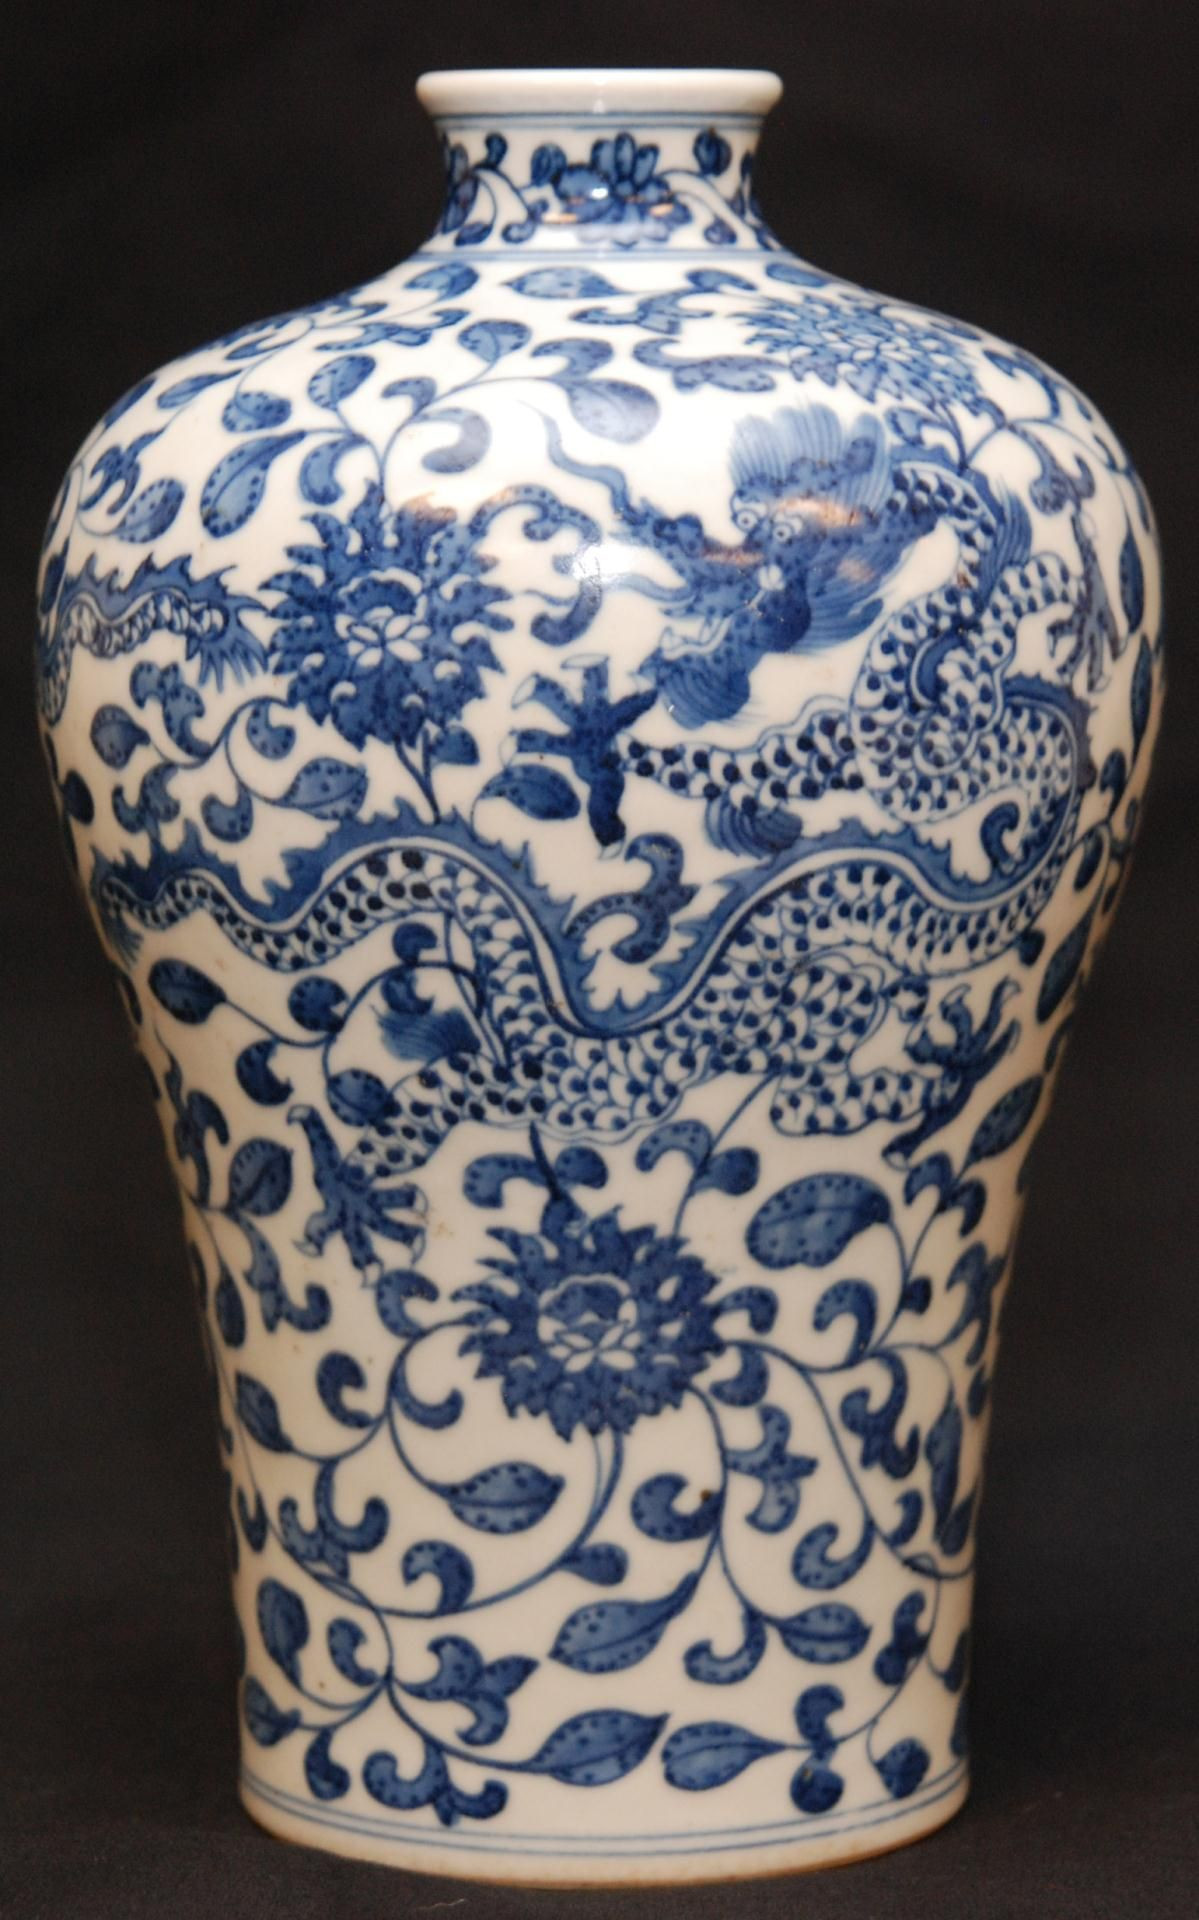 chinese meiping vase of chinese qianlong porcelain dragons vase chinese qing dynasty throughout chinese qianlong porcelain dragons vase chinese qing dynasty qianlong hand painted blue and white porcelain mei ping vase having dragon and lotus blossom